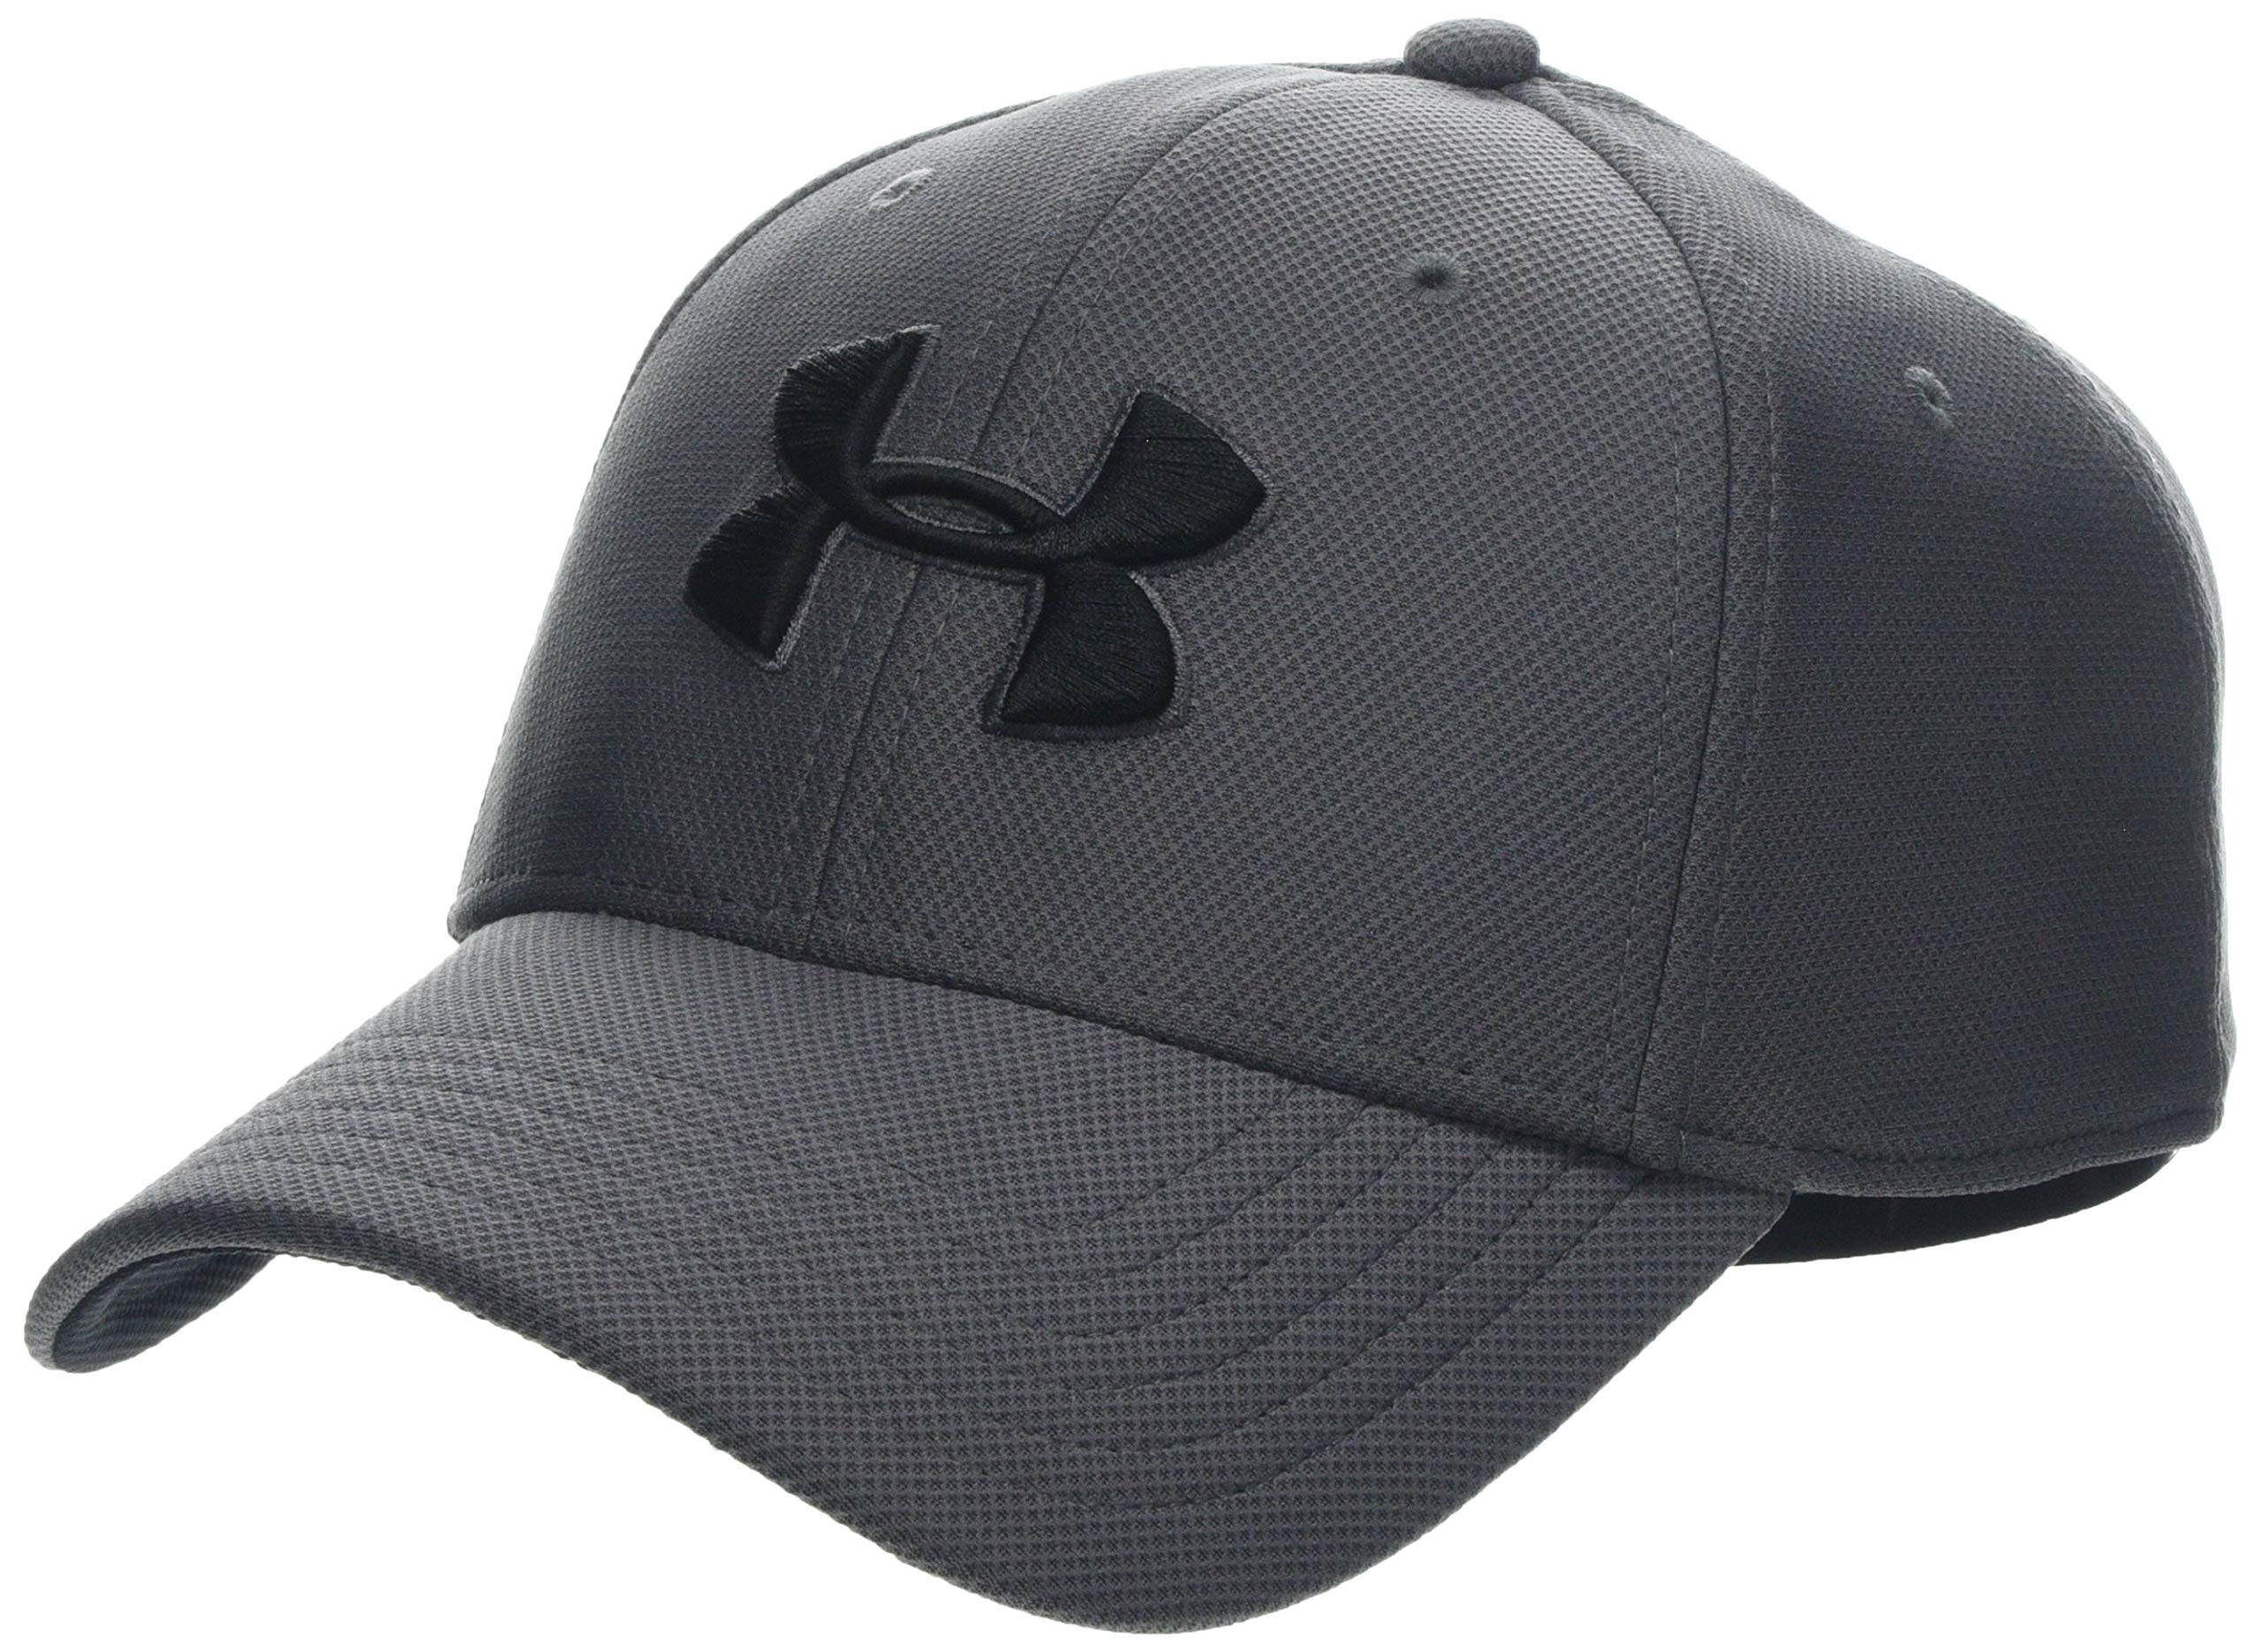 Under Armour Mens Blitzing 3.0 Cap Gorra, Hombre, Gris (Graphite Black 040)